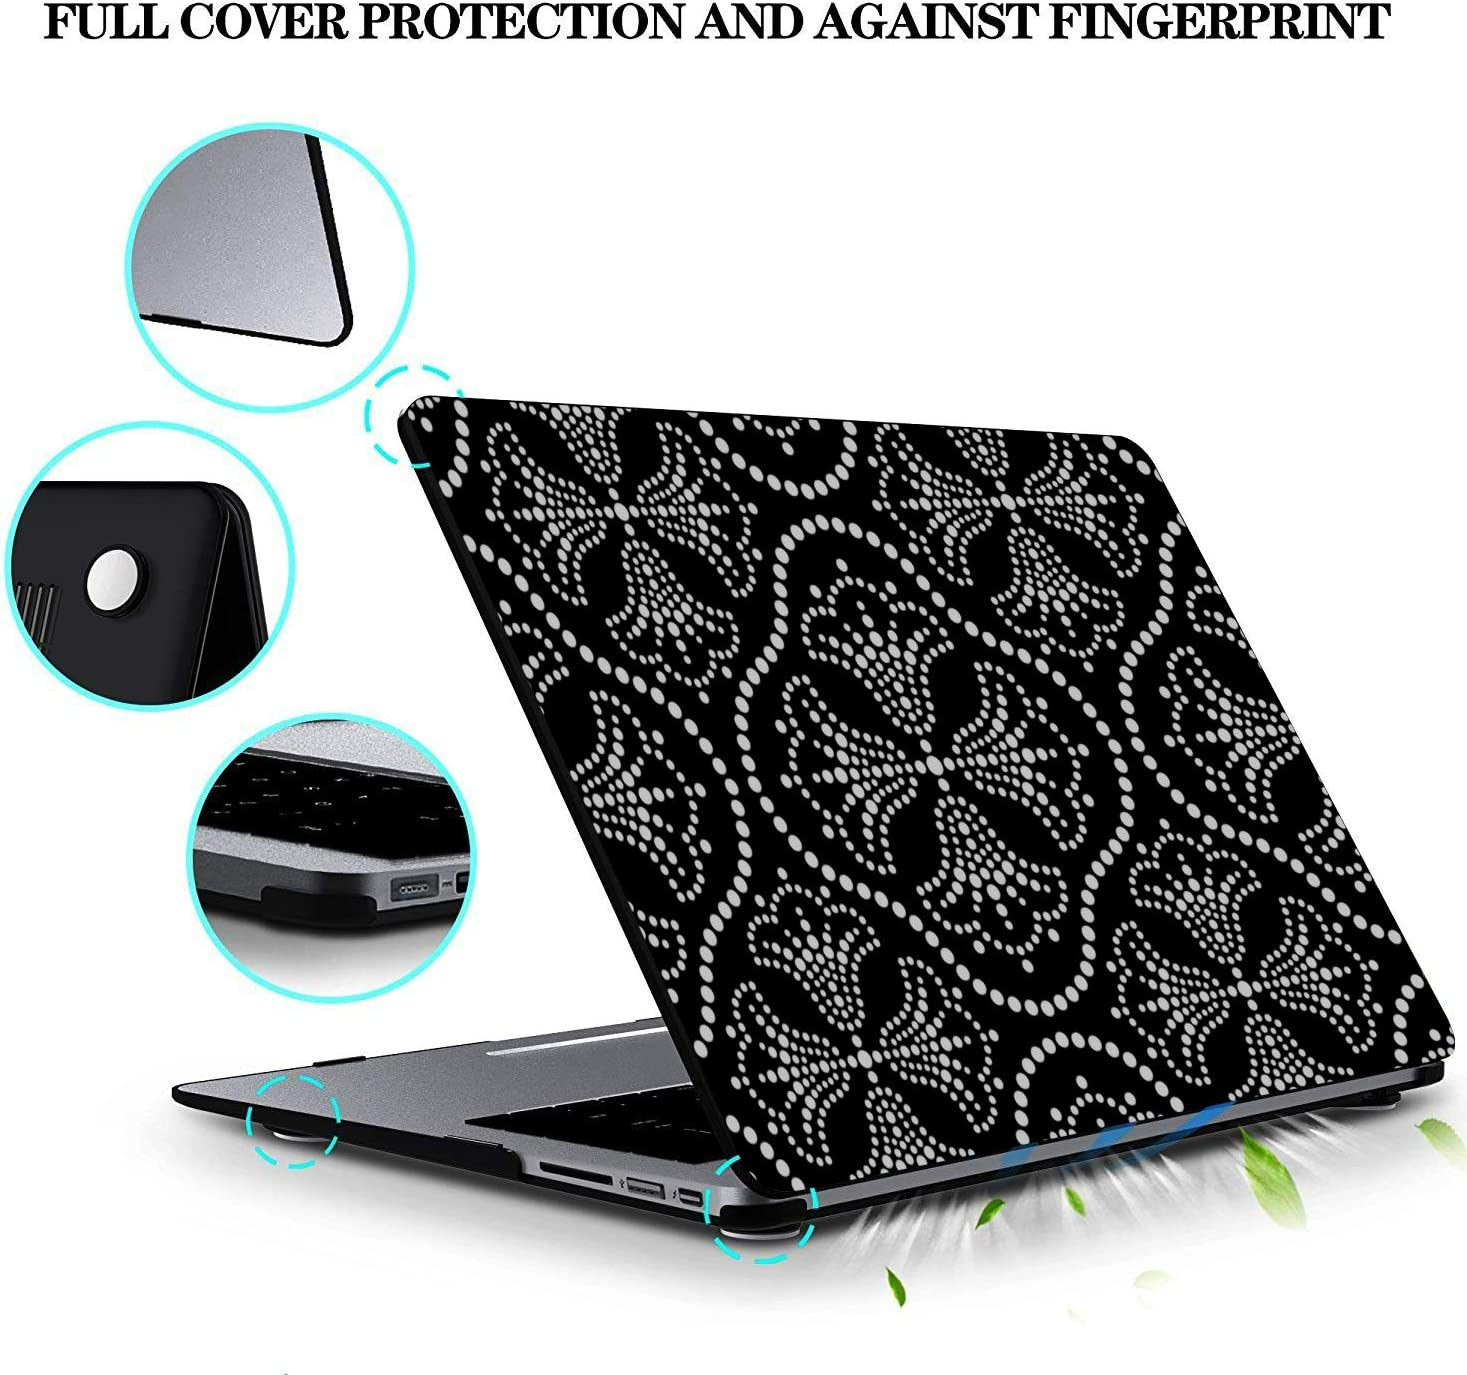 Passport Cover Holder For Women Dog Cat Paw Doodle Stylish Pu Leather Us Passport Cover Passport Holder Cover For Women Men Passport Cover For Men